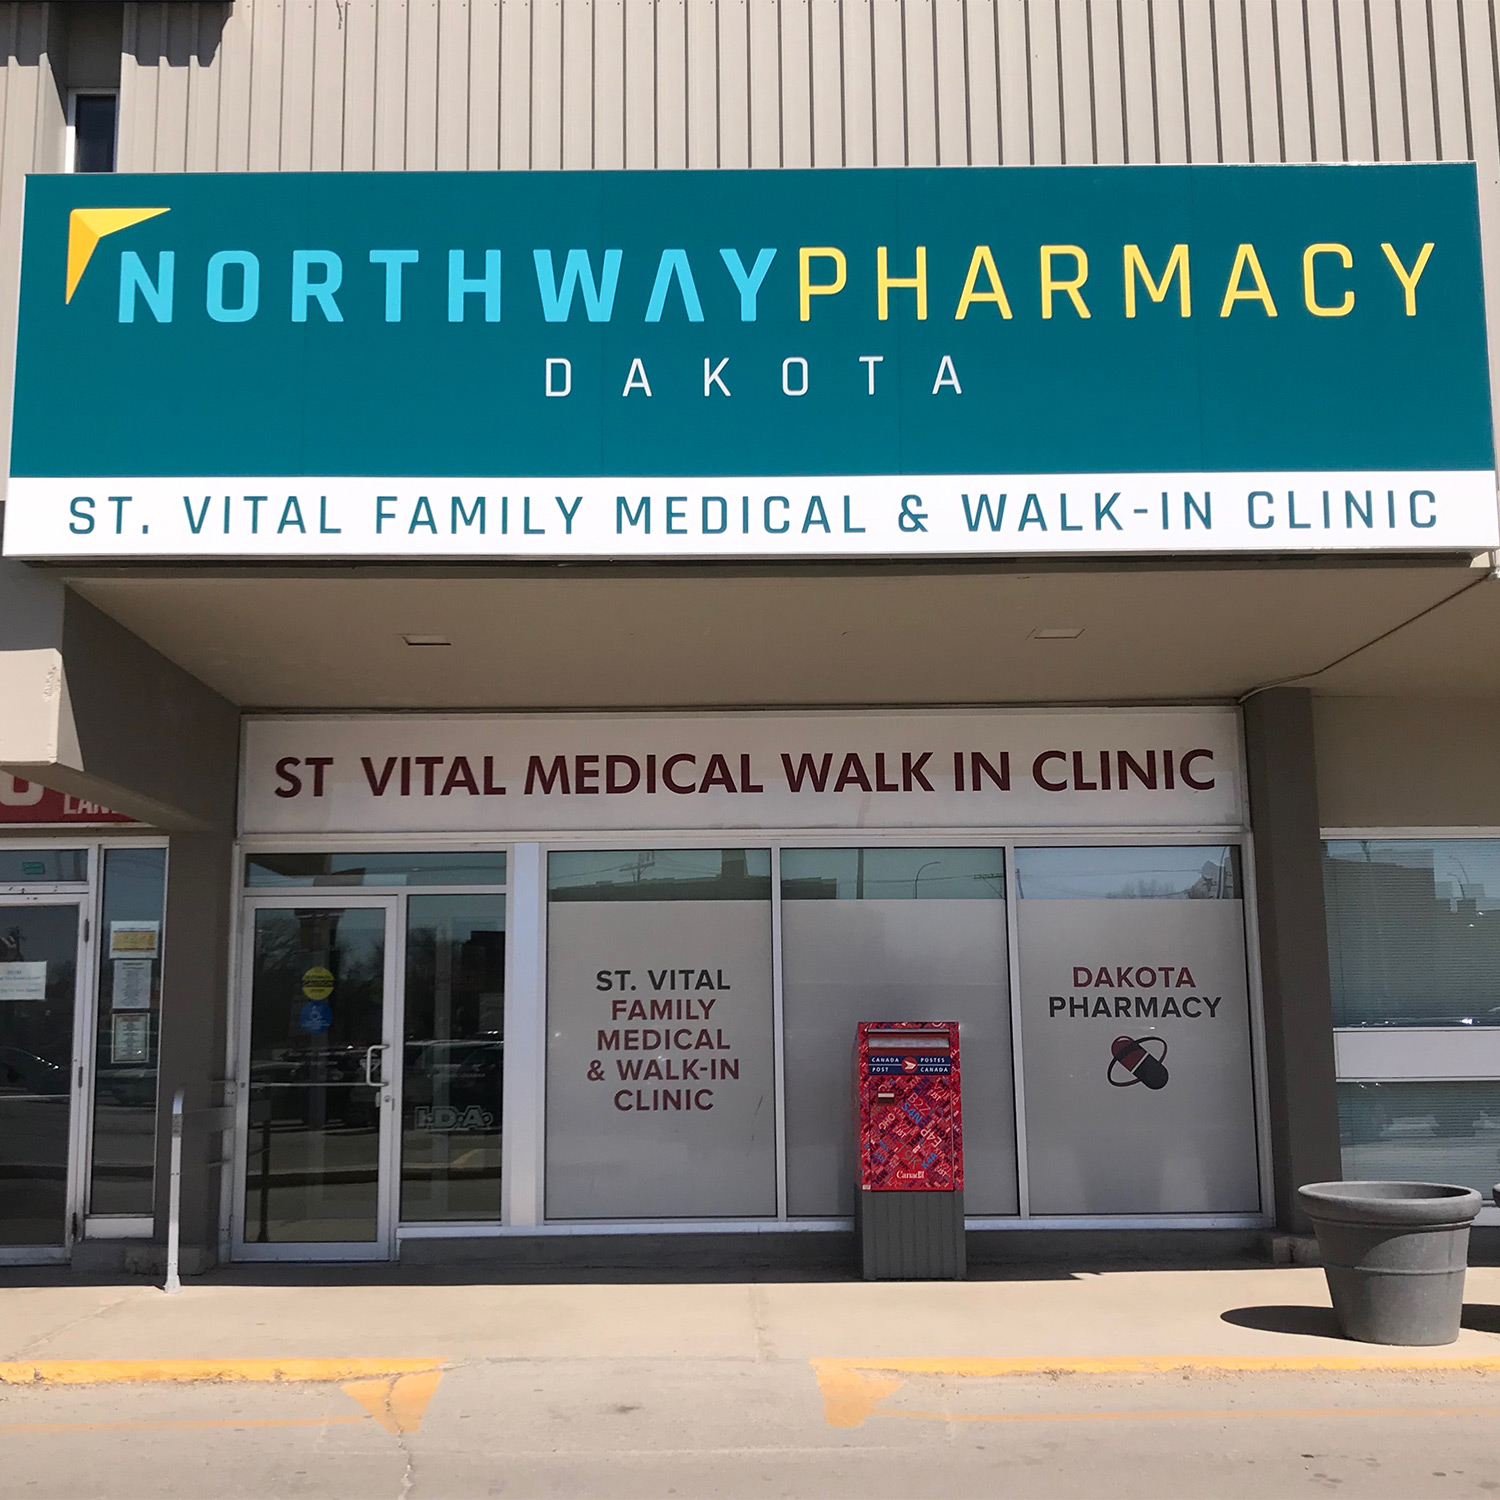 Northway Pharmacy Dakota